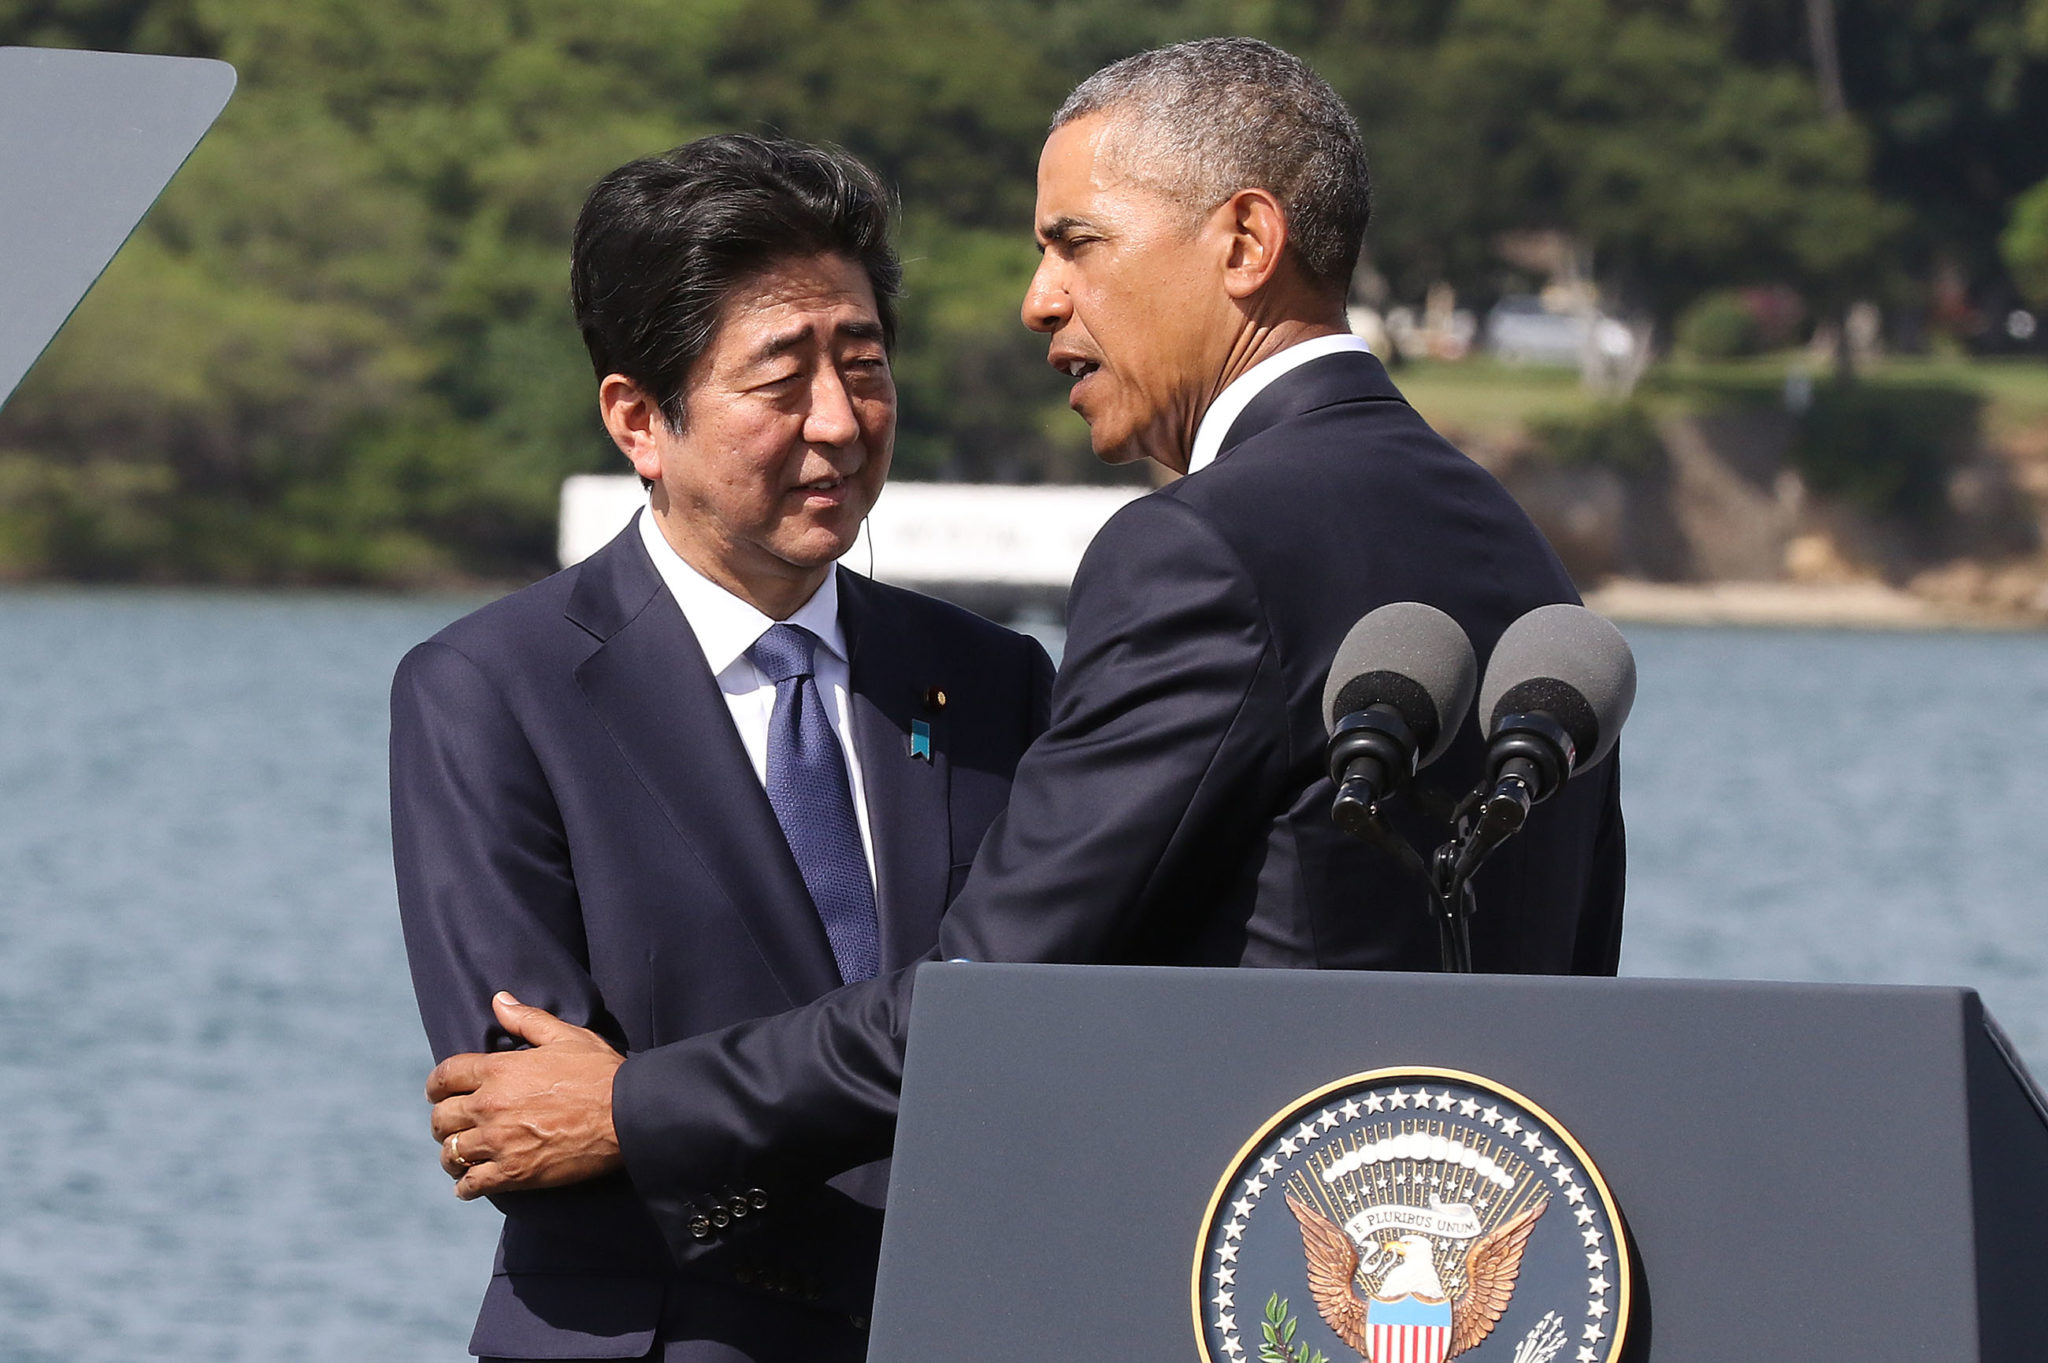 <p>Dec. 27: Japanese Prime Minister Shinzo Abe and President Barack Obama meet at Pearl Harbor, where Abe expressed his &#8220;sincere and everlasting condolences&#8221; for the deadly attack by Japan on Dec. 7, 1941. <em>Cory Lum/Civil Beat</em></p>